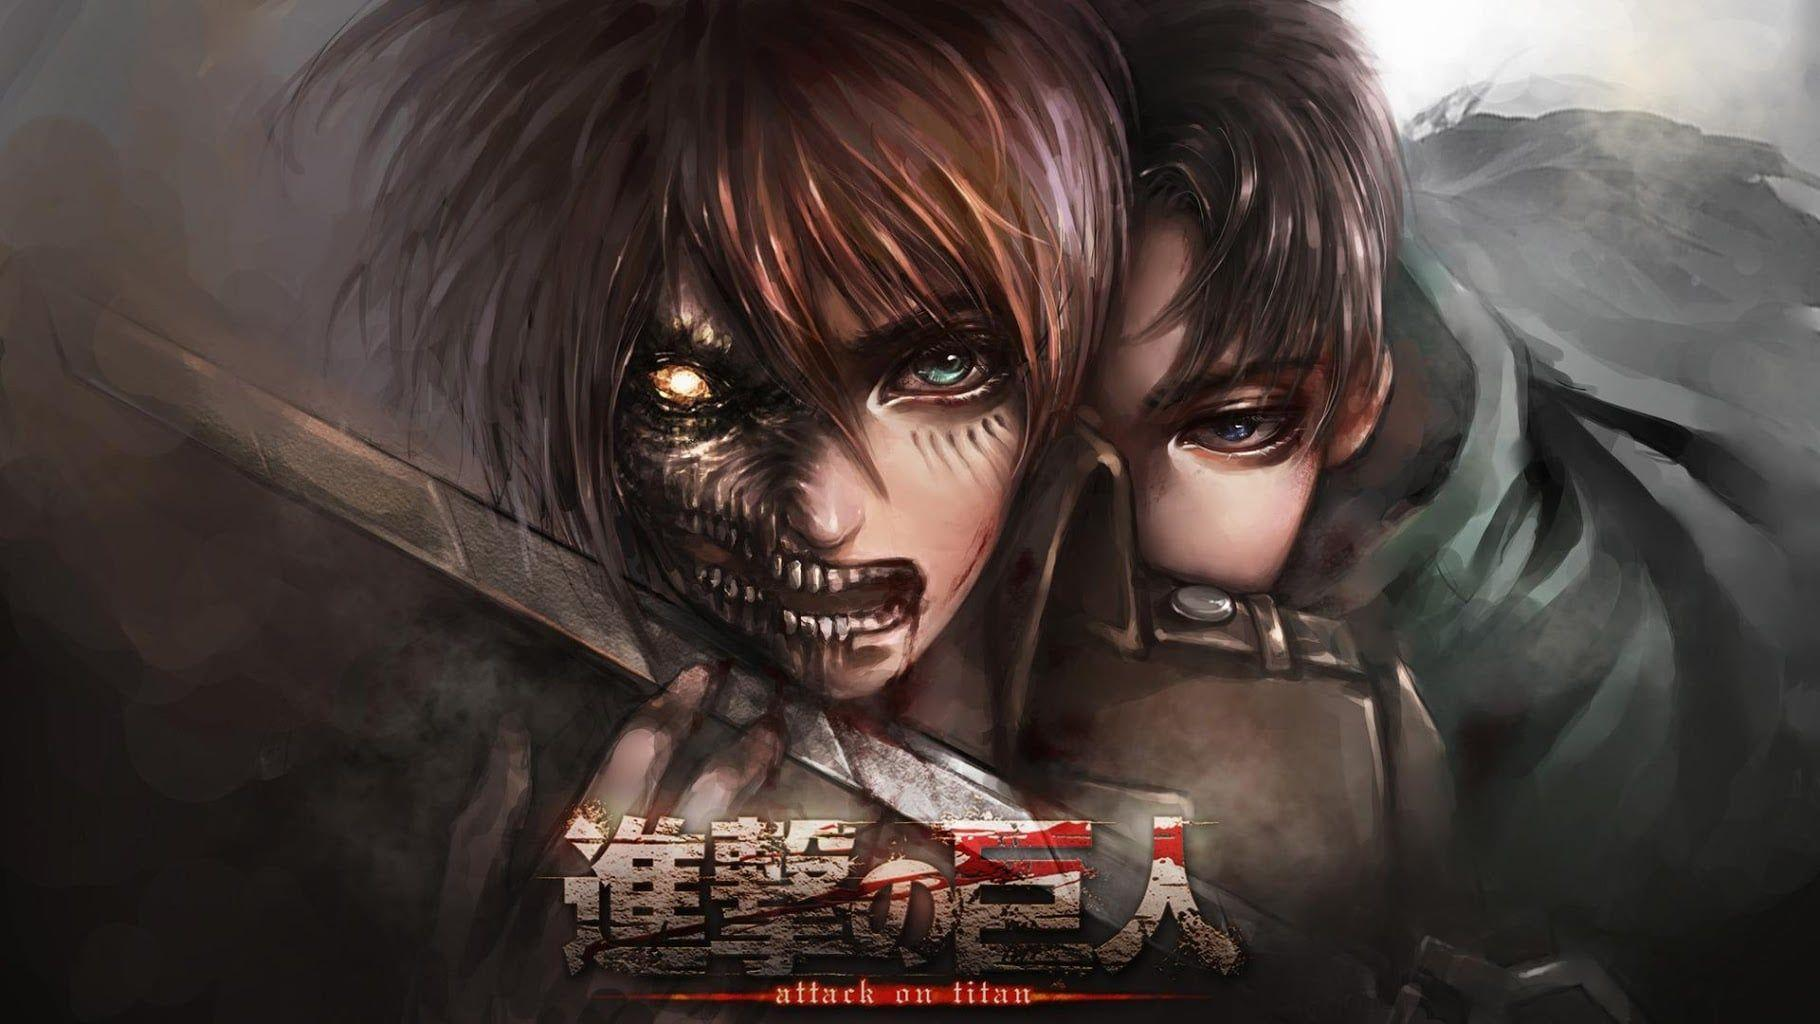 24+ Attack on Titan wallpapers HD Download